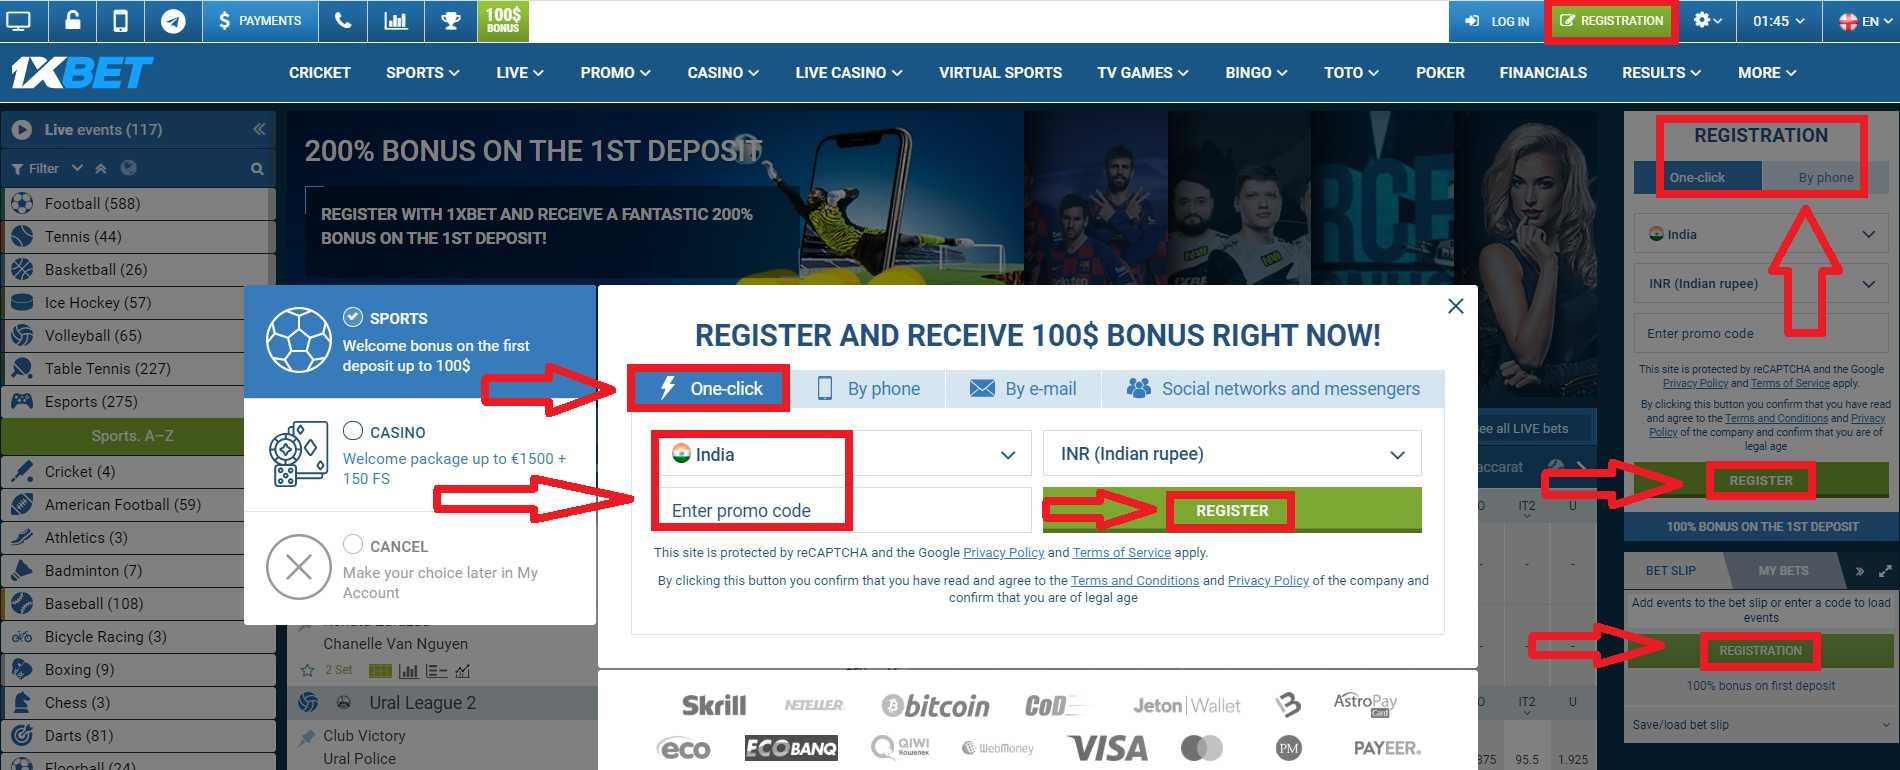 Perform 1xBet Login in India